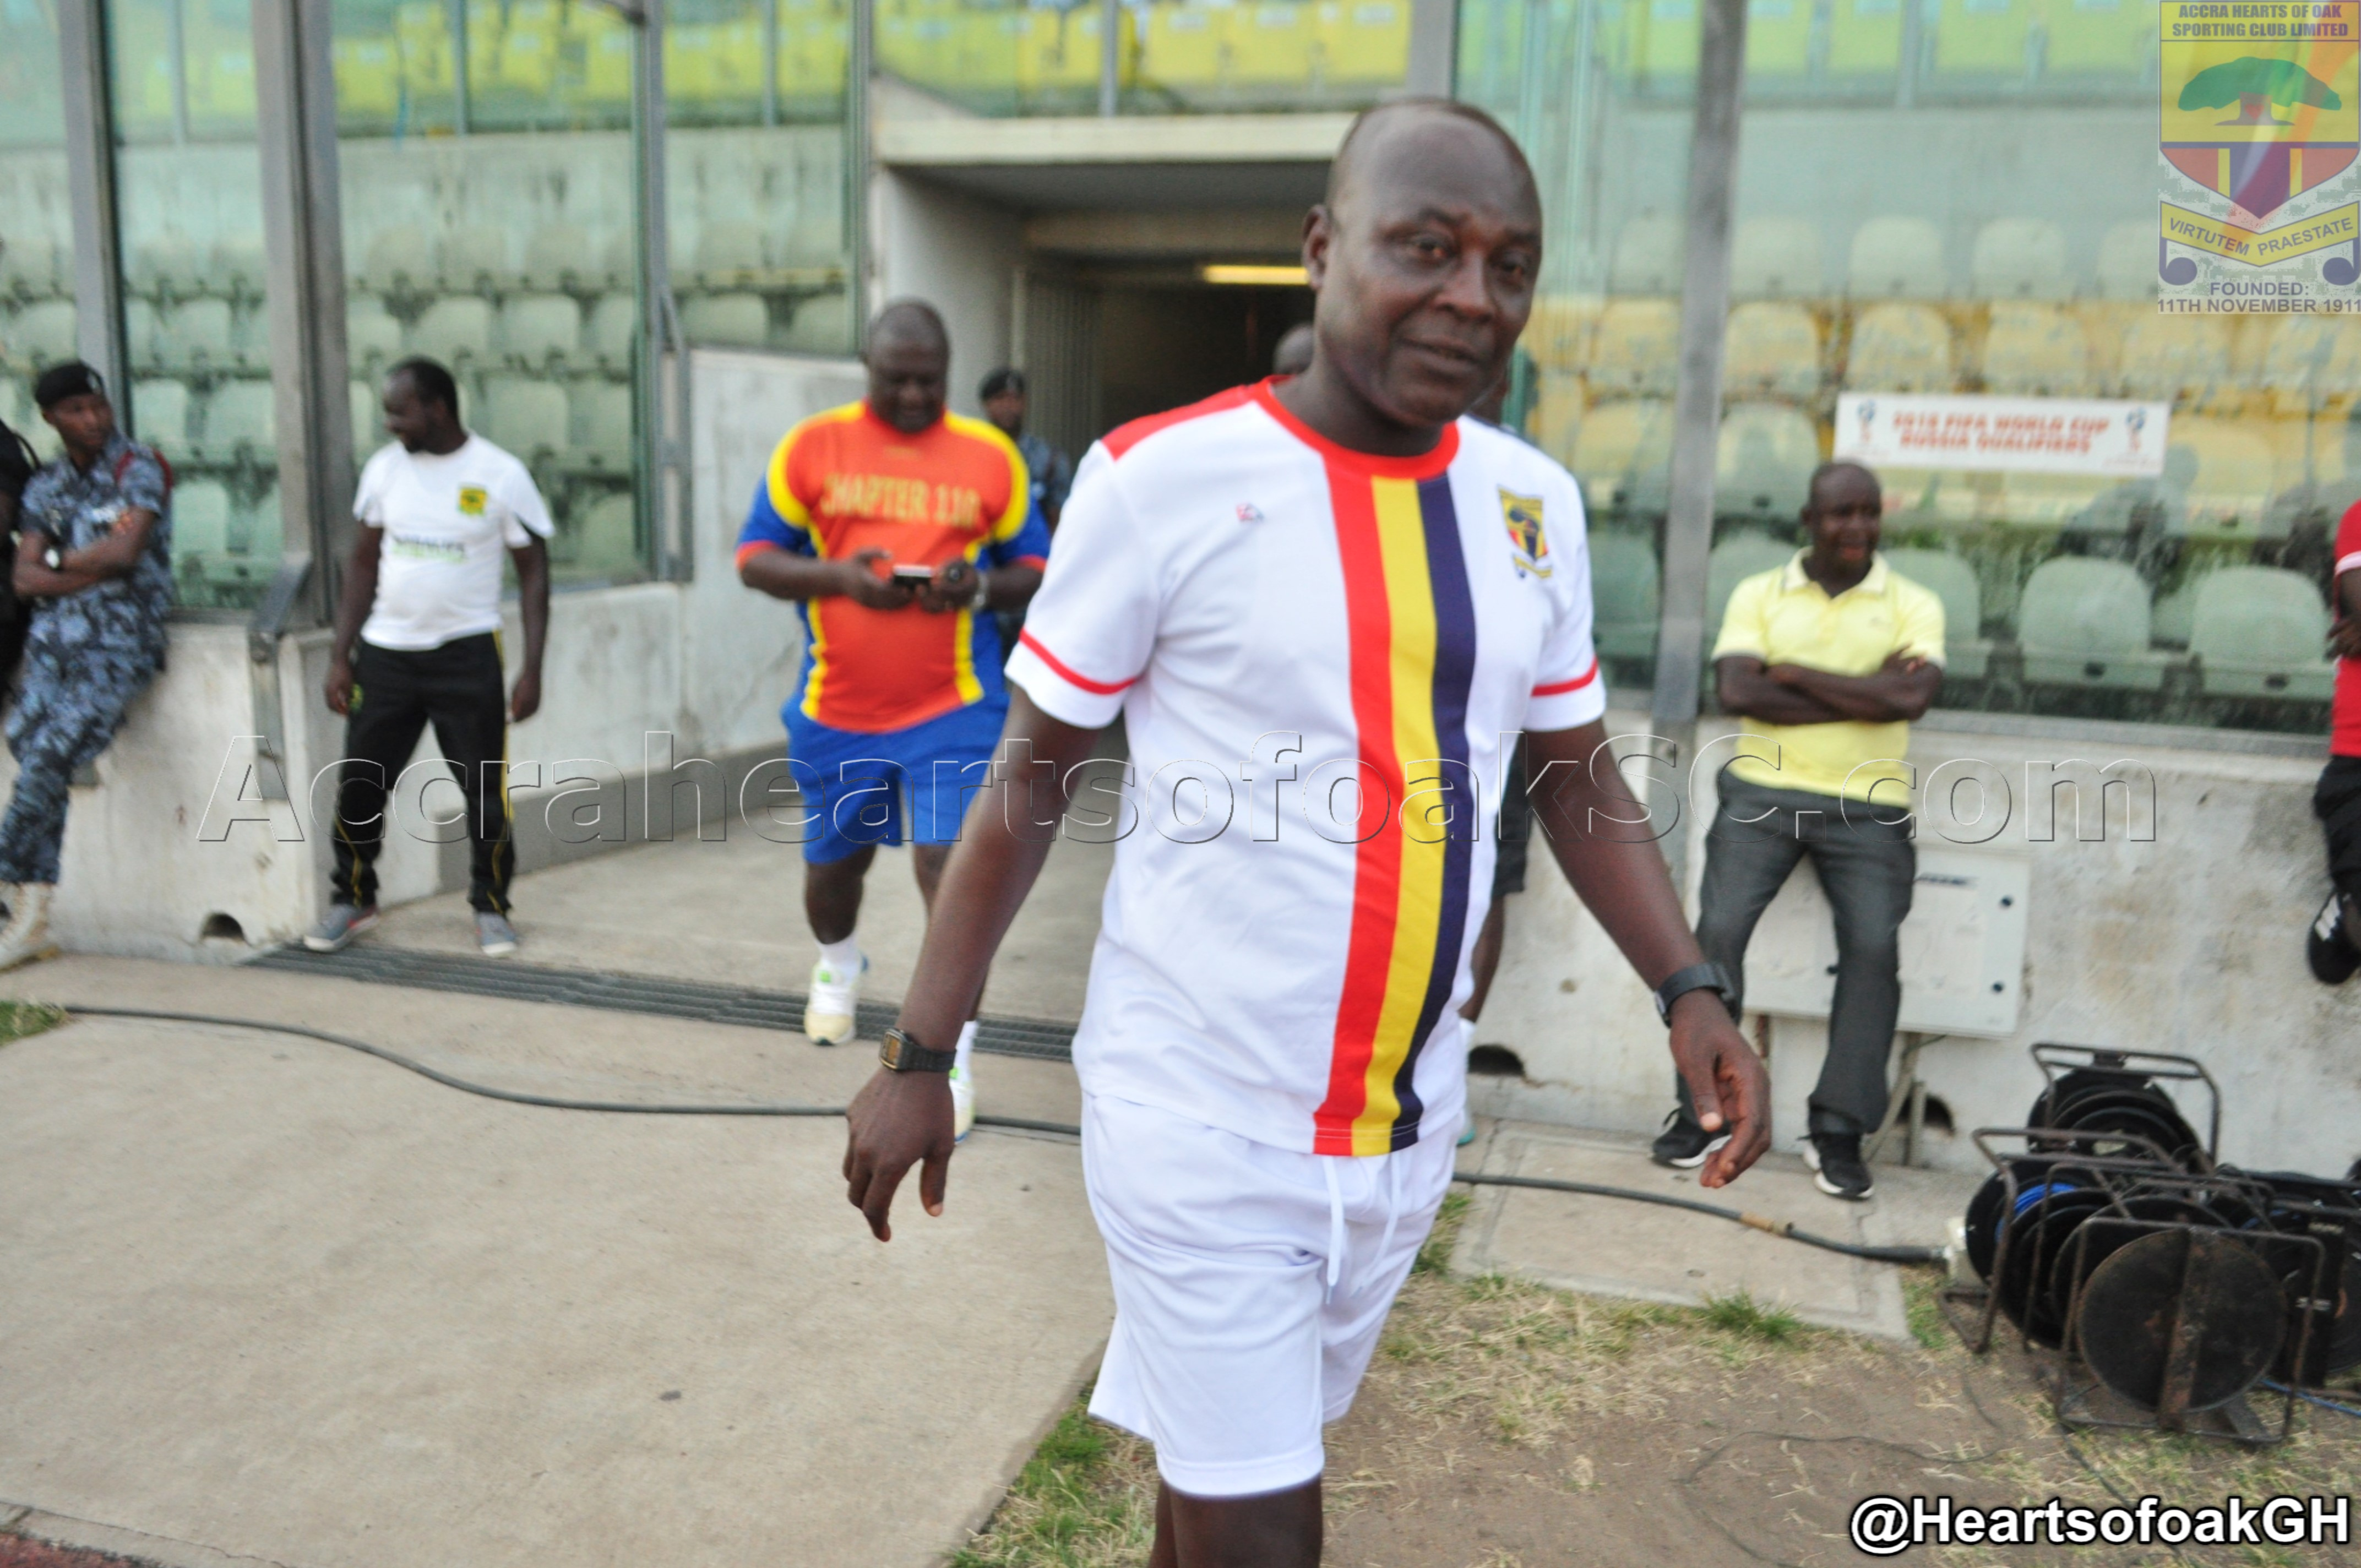 Hearts of Oak terminate coach Henry Wellington's contract after poor results